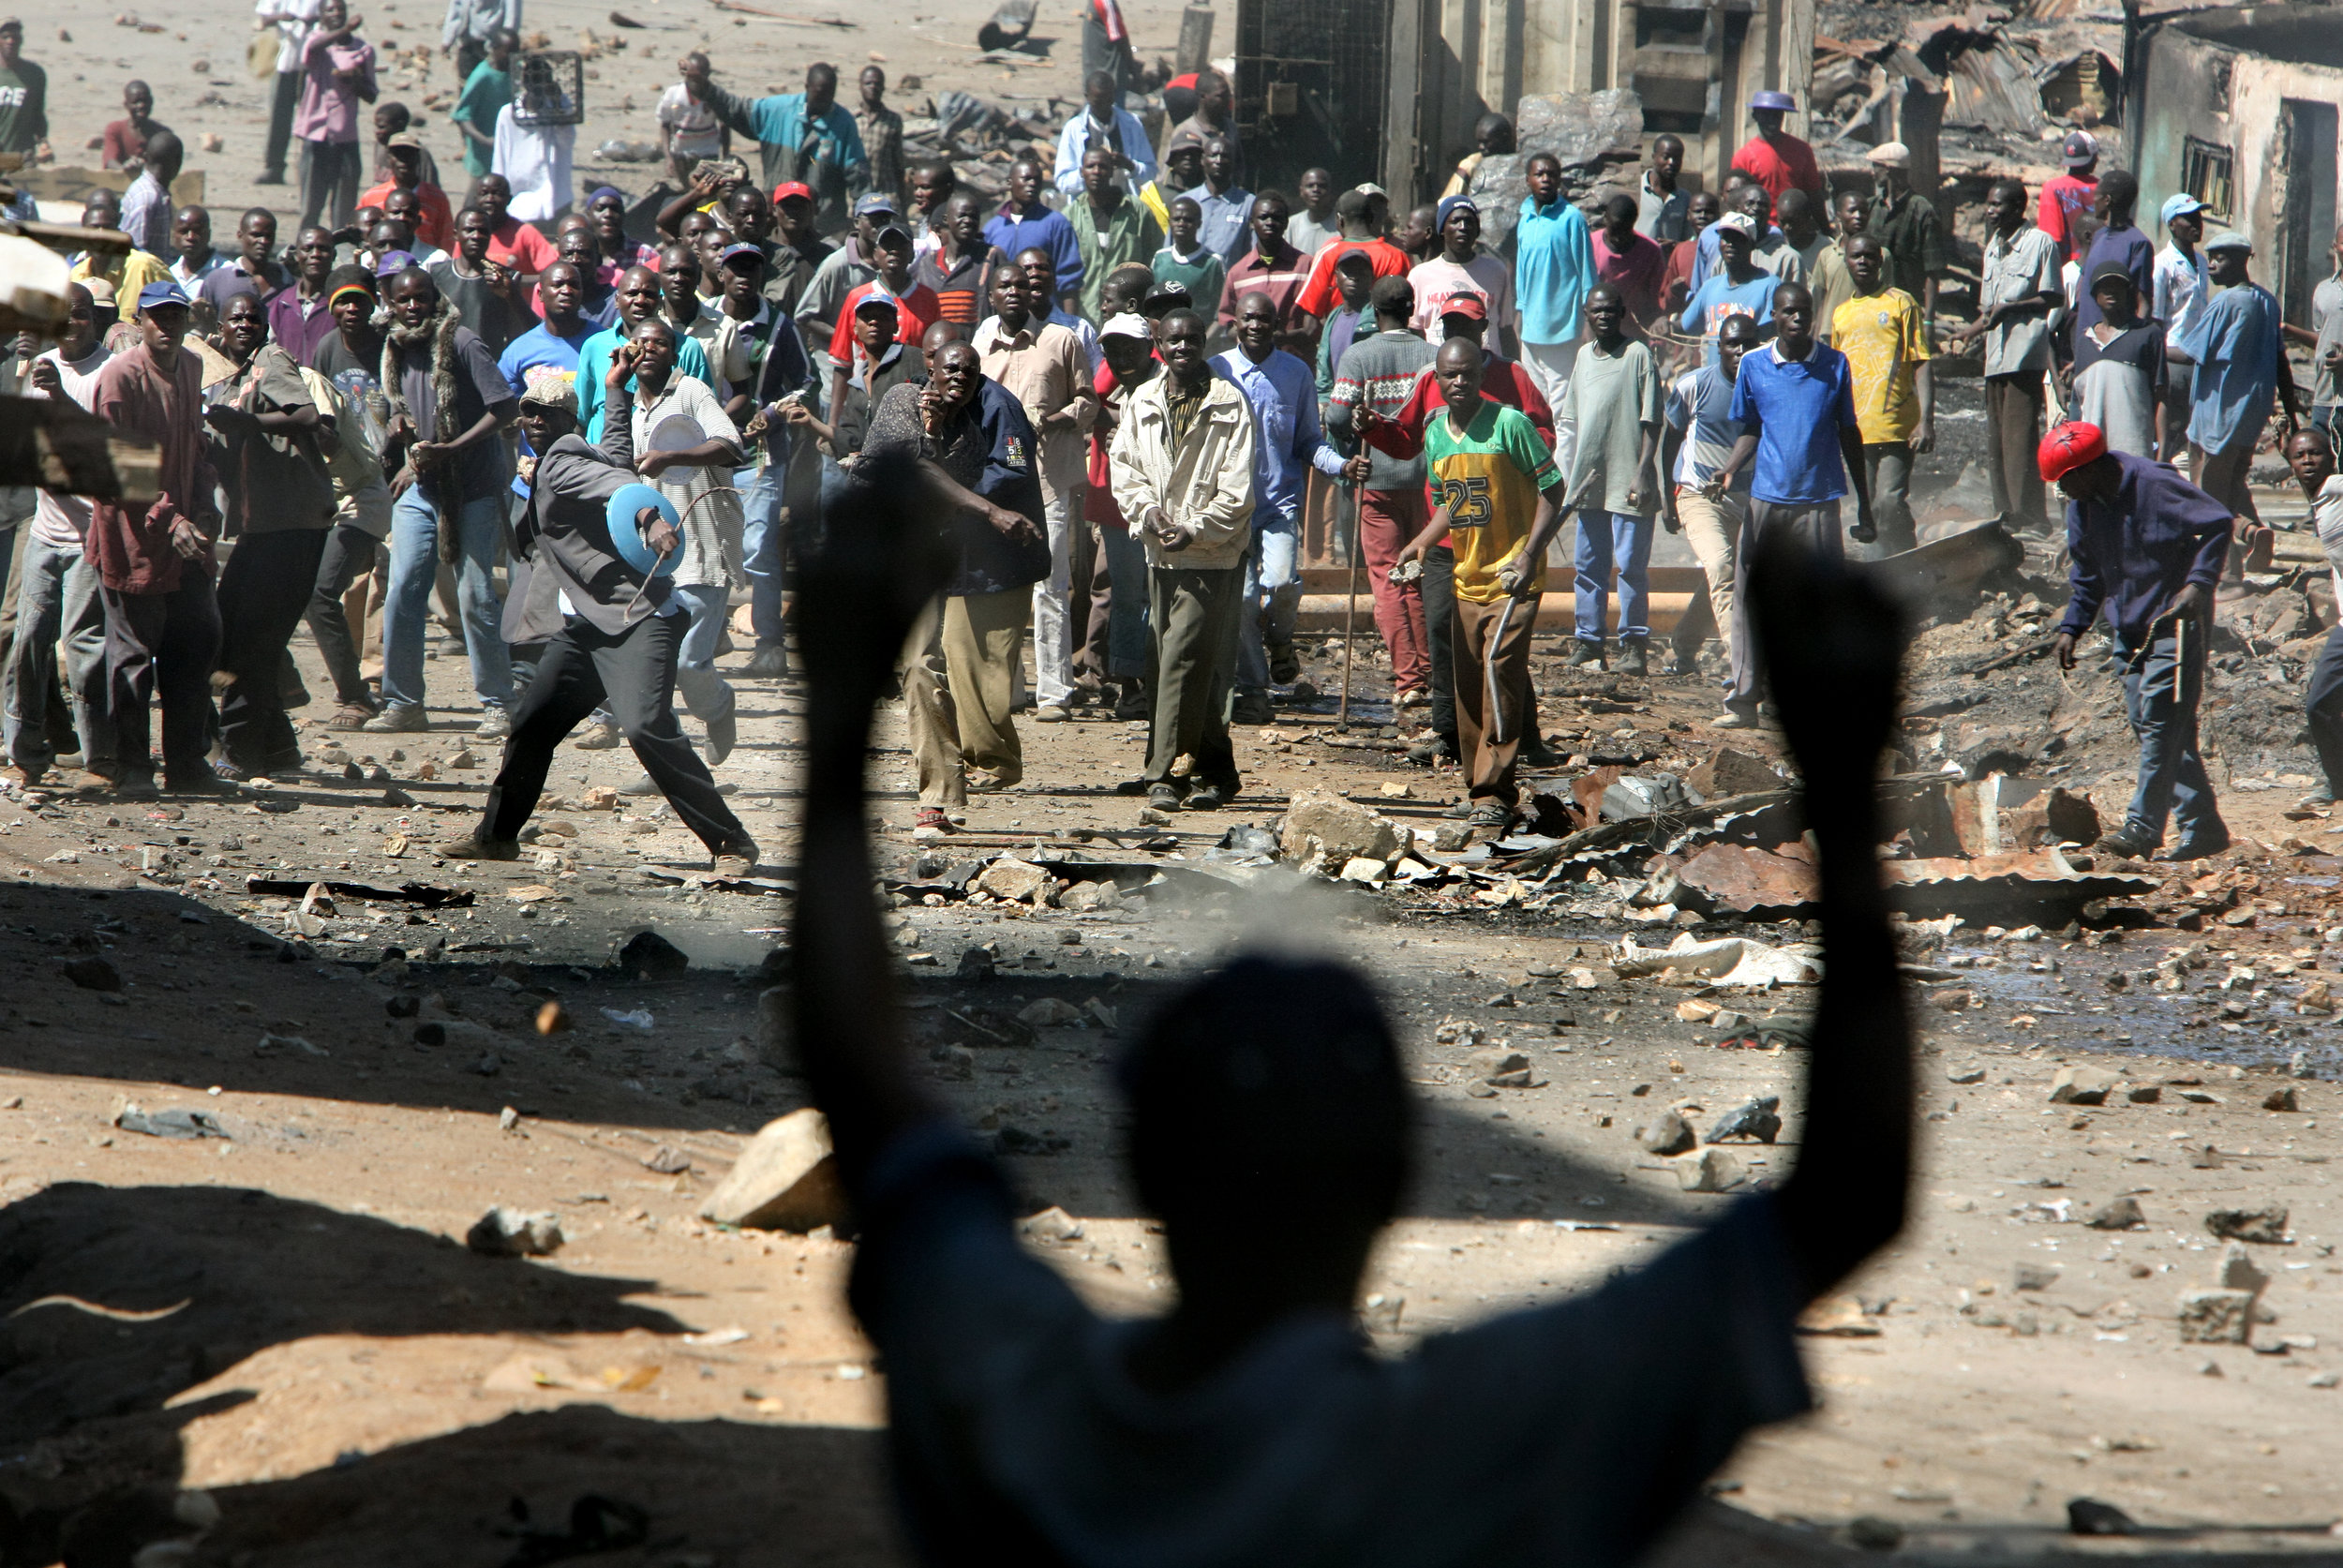 Members of two tribal groups threw rocks at one another across barricades on Tuesday in the Mathare slum.